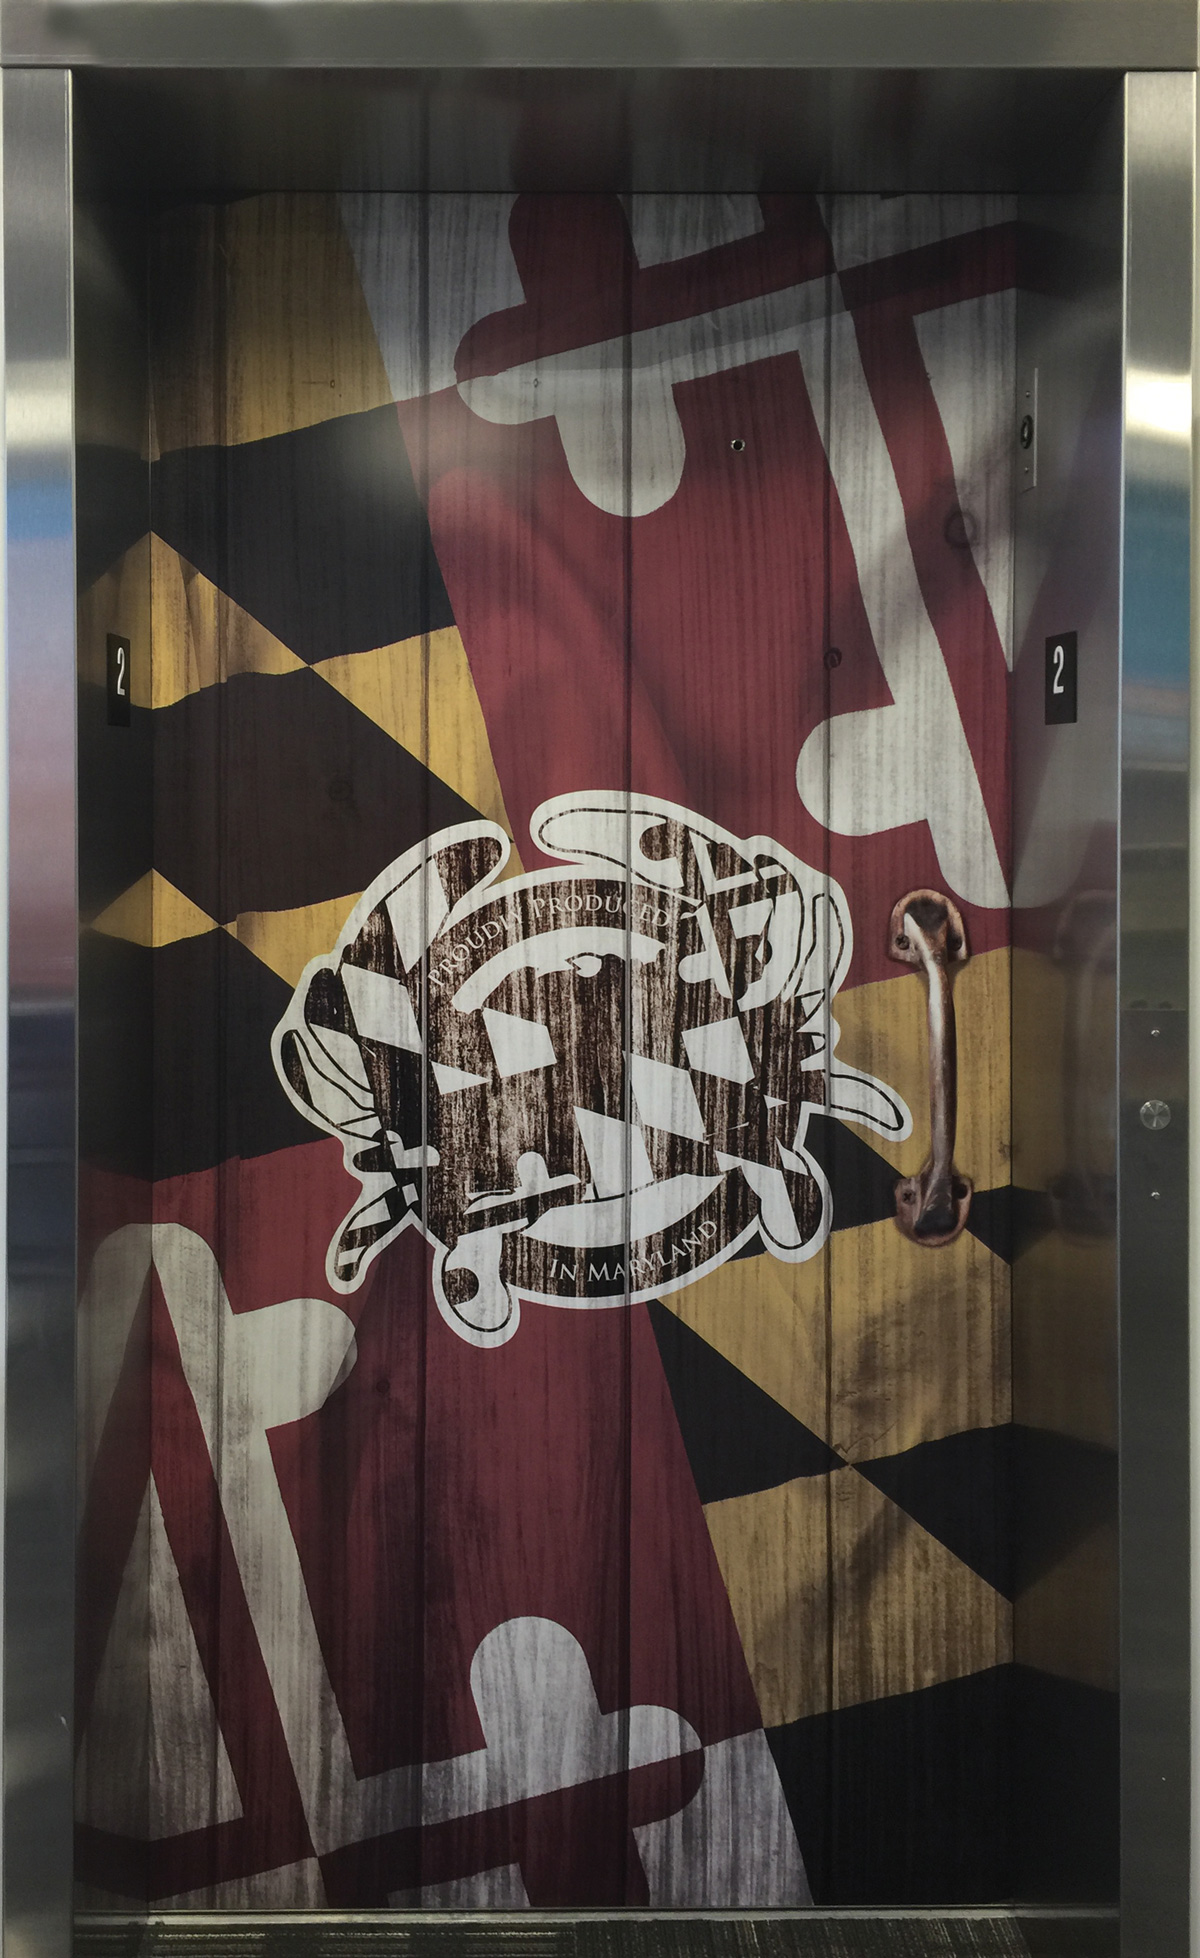 Elevator Wraps by Master Signs powered by Strategic Factory in Owings Mills, Maryland